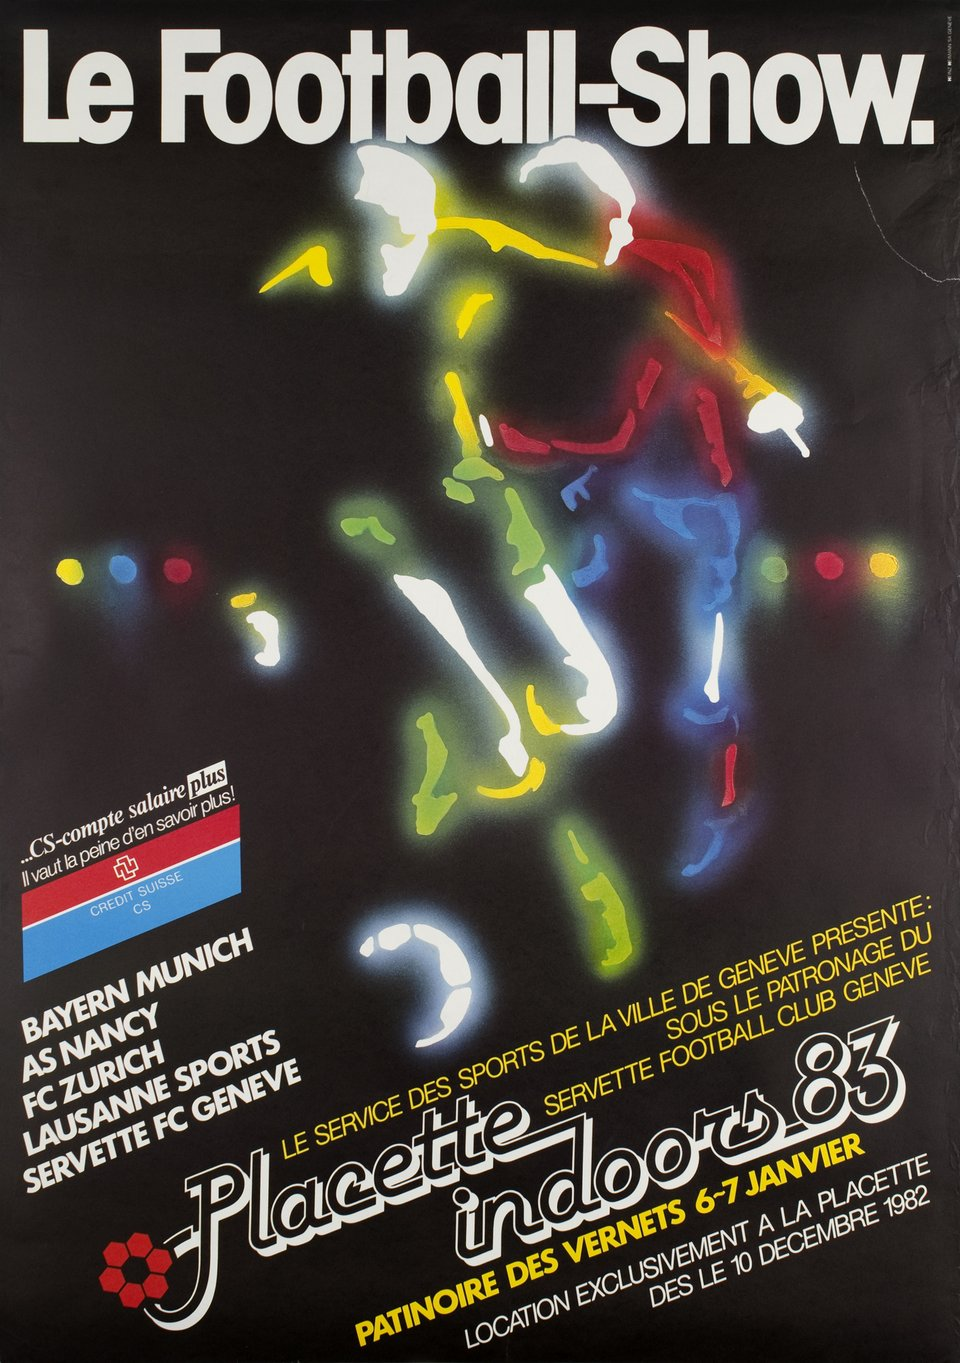 Le Football-Show, Placette Indoors 83 – Affiche ancienne – Heinz HEIMANN – 1983